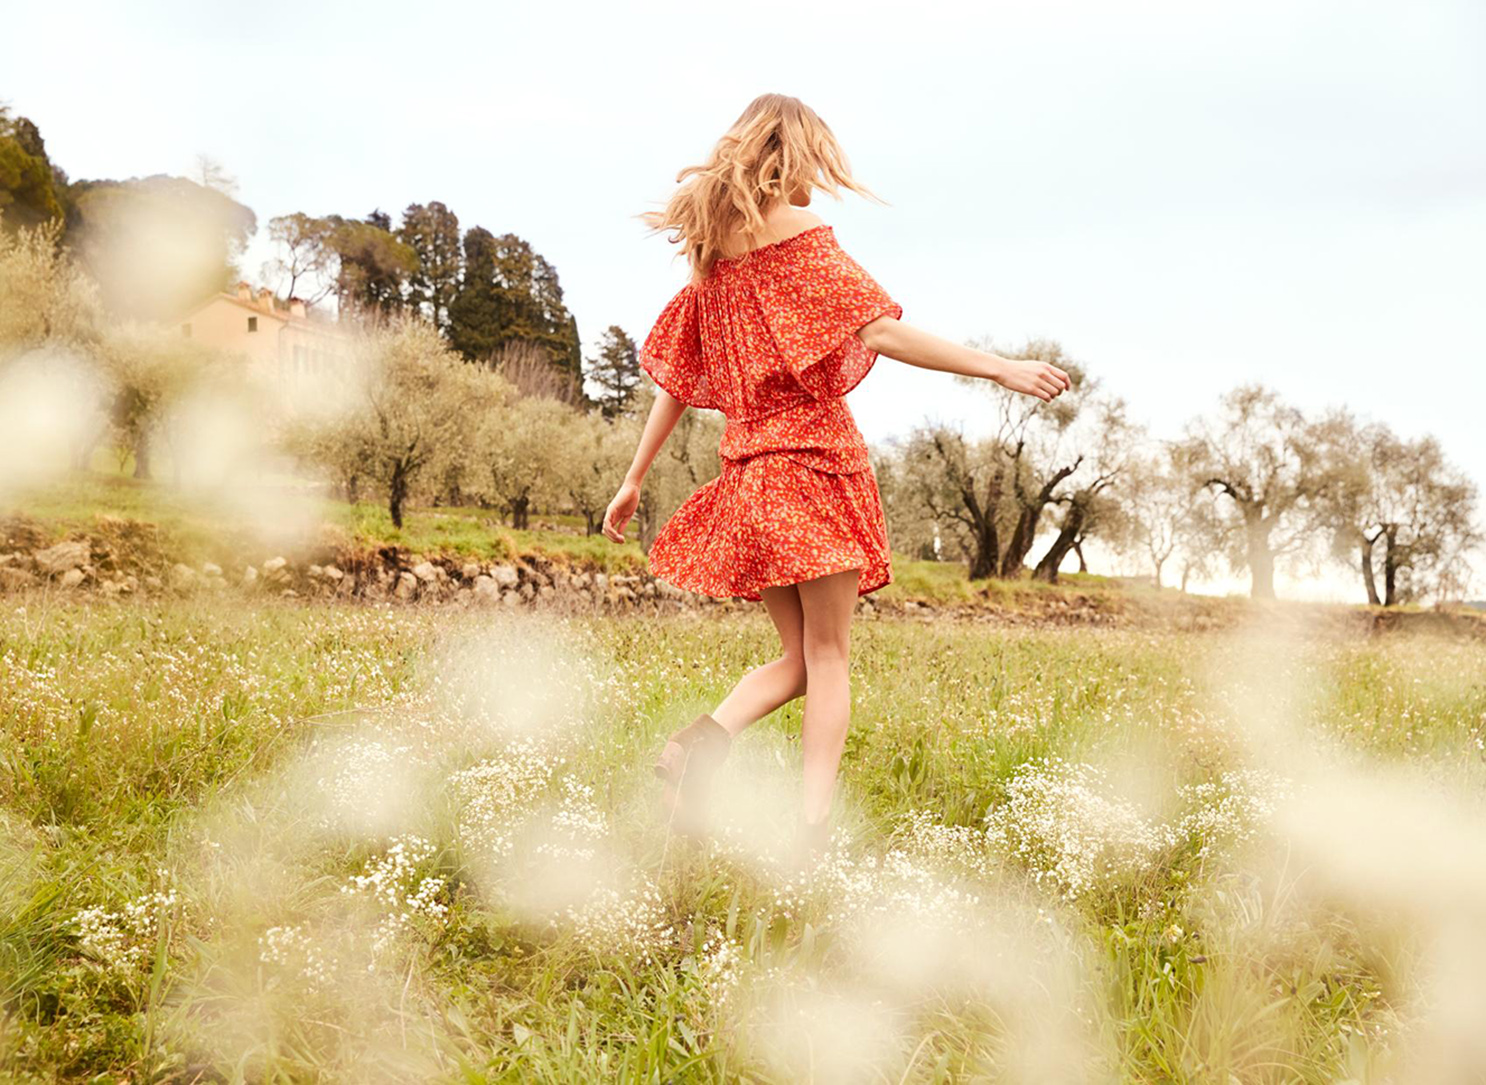 red dress walking field trees green blond hair